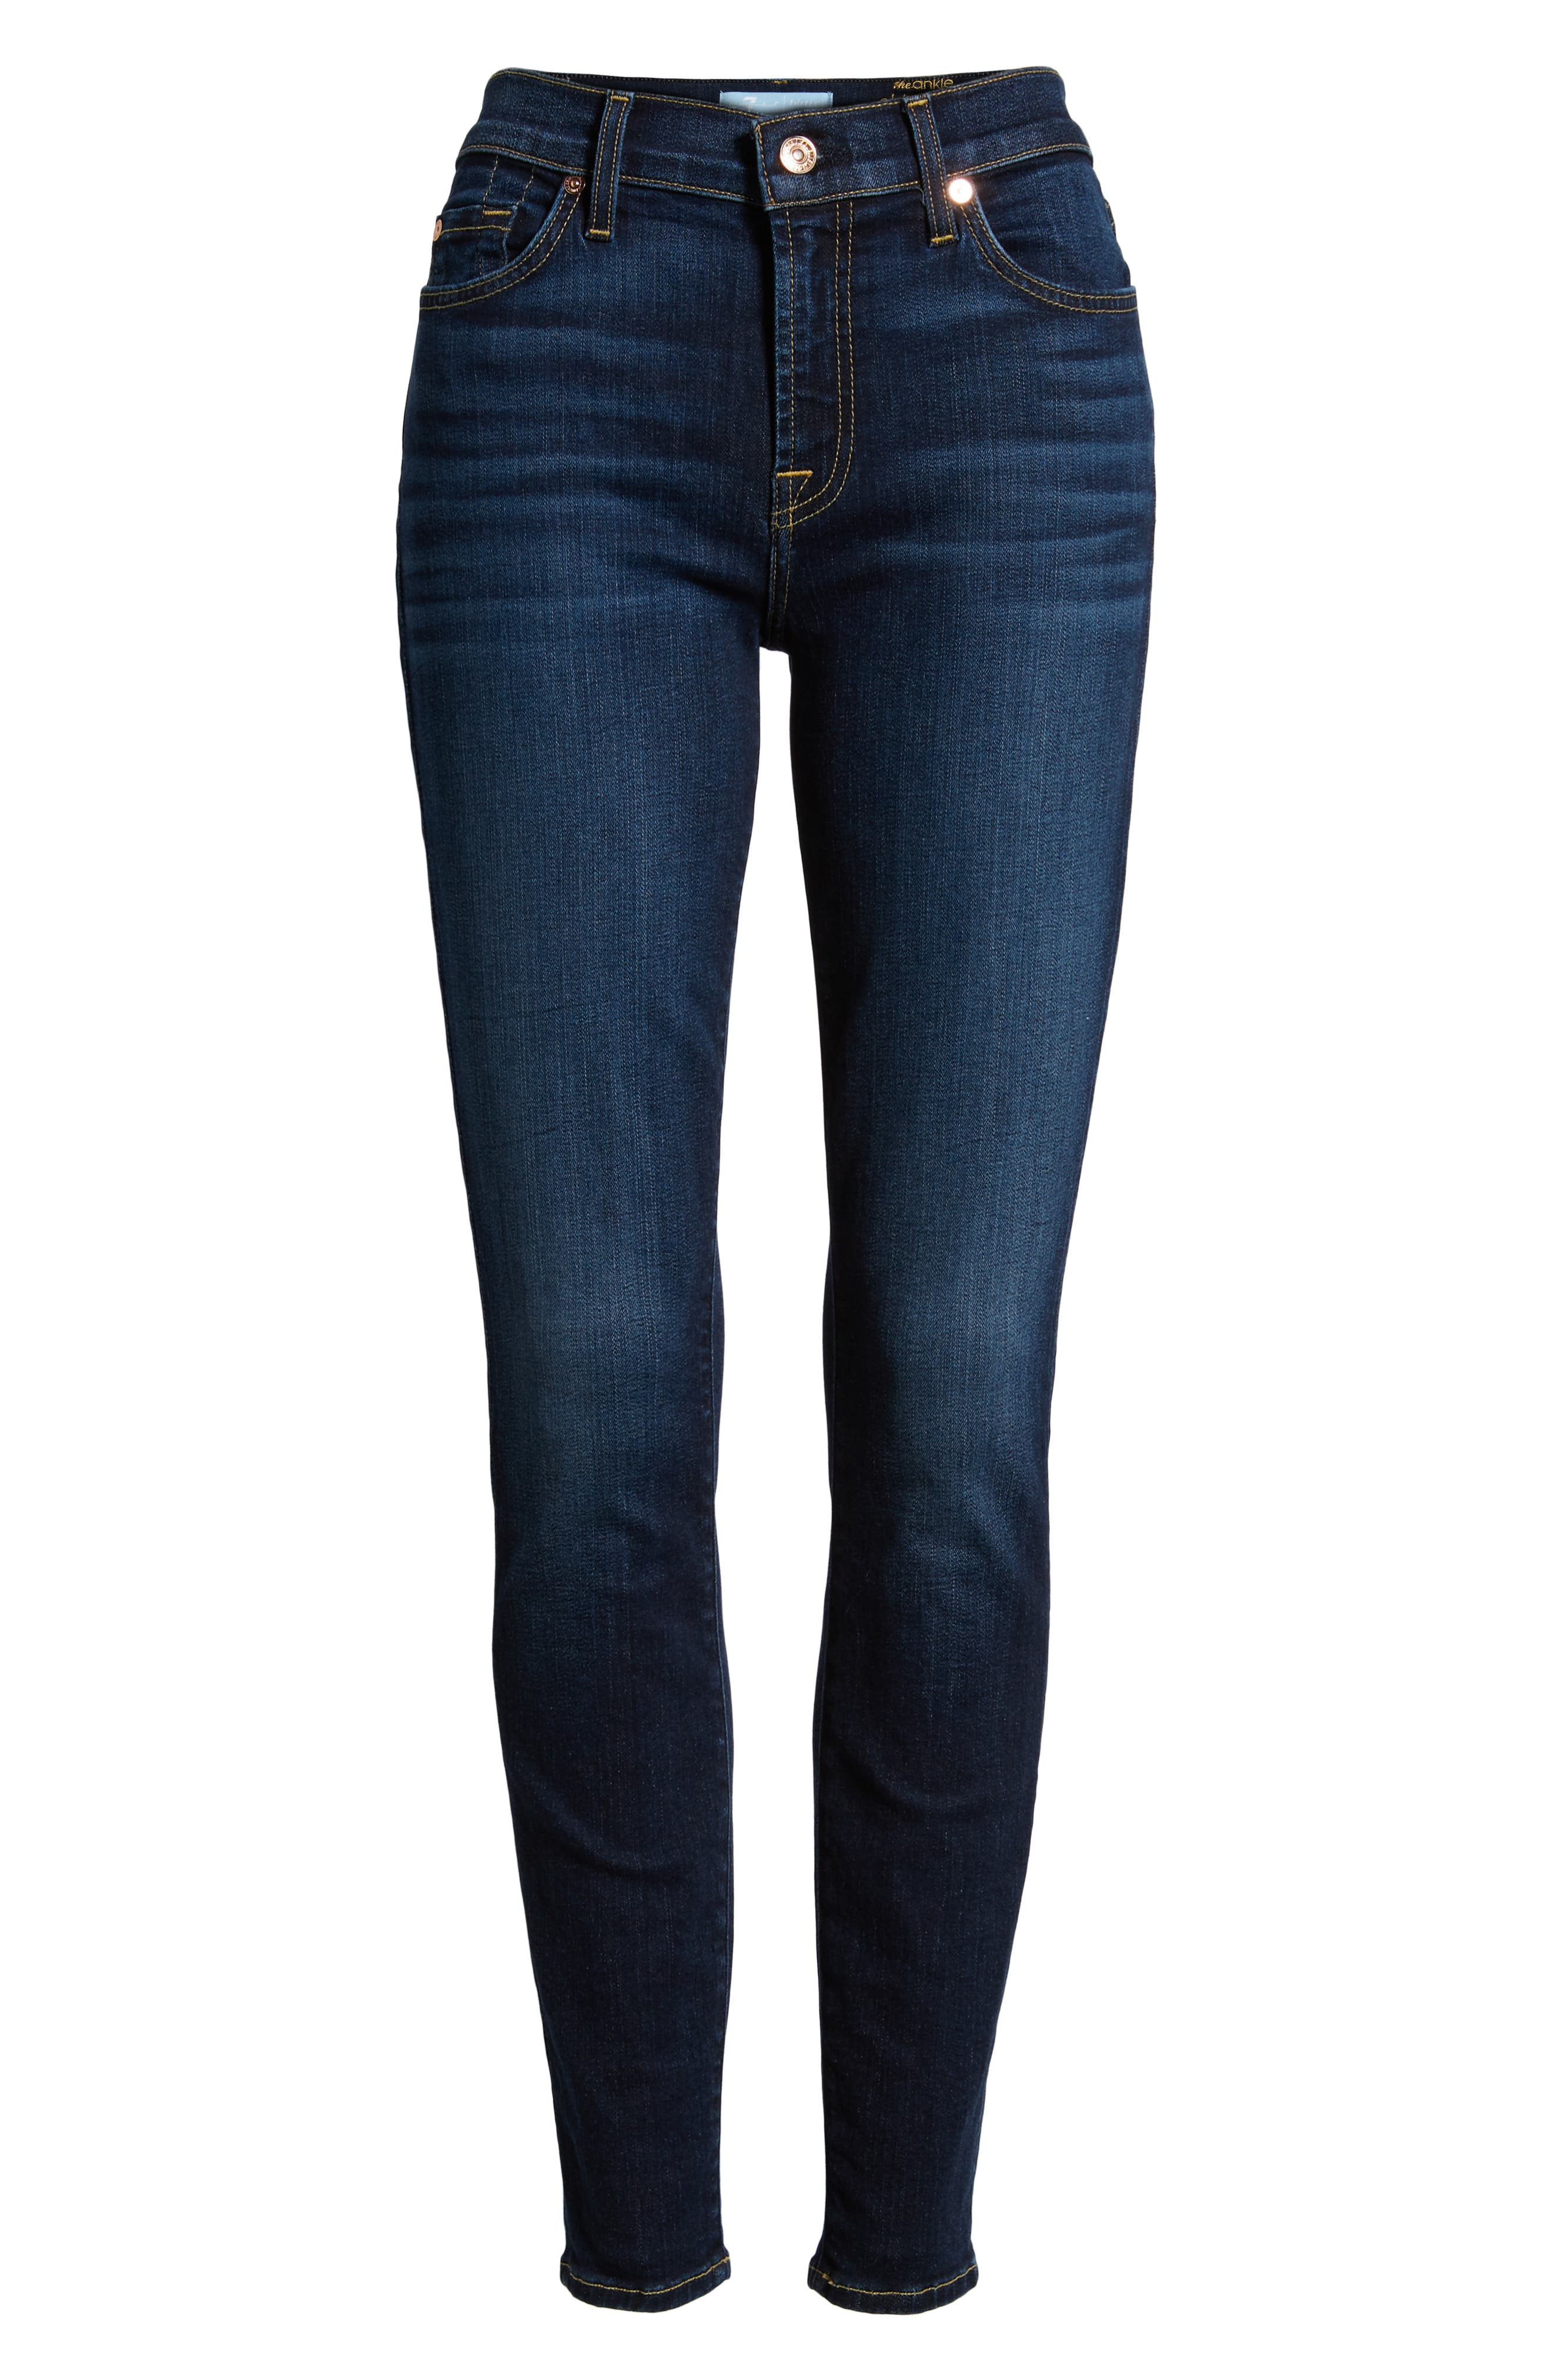 Ankle Skinny Jeans,                             Alternate thumbnail 7, color,                             AUTHENTIC FATE